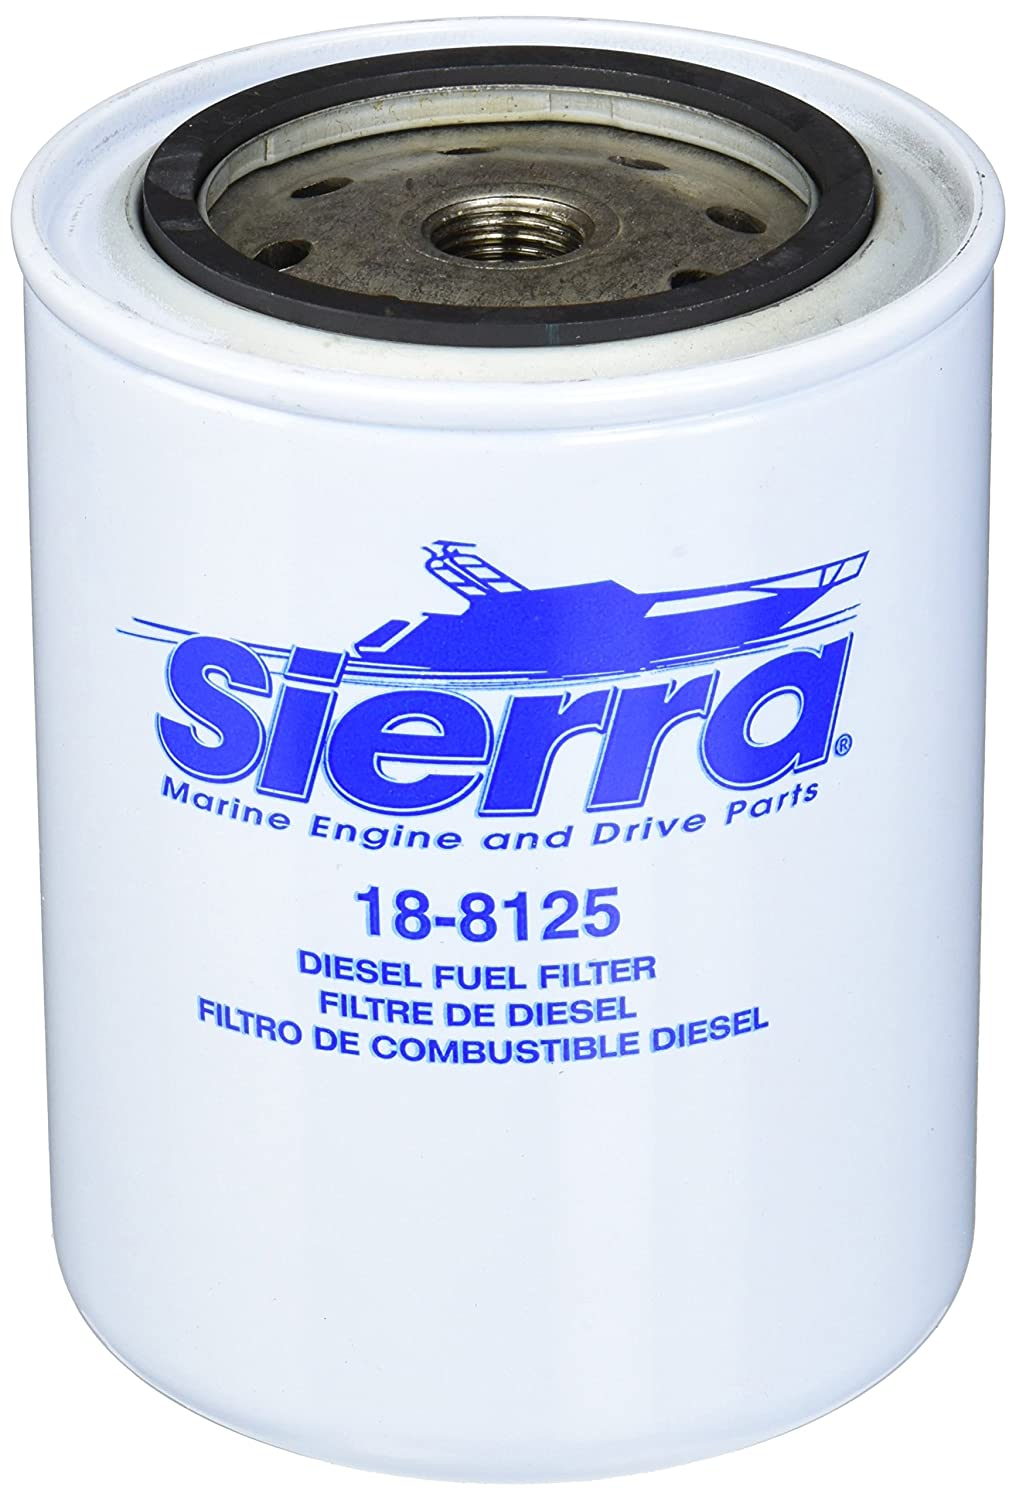 Amazon.com: Sierra 18-8125 Diesel Fuel Filter for Volvo Penta Marine  Engines, 3583443: Automotive